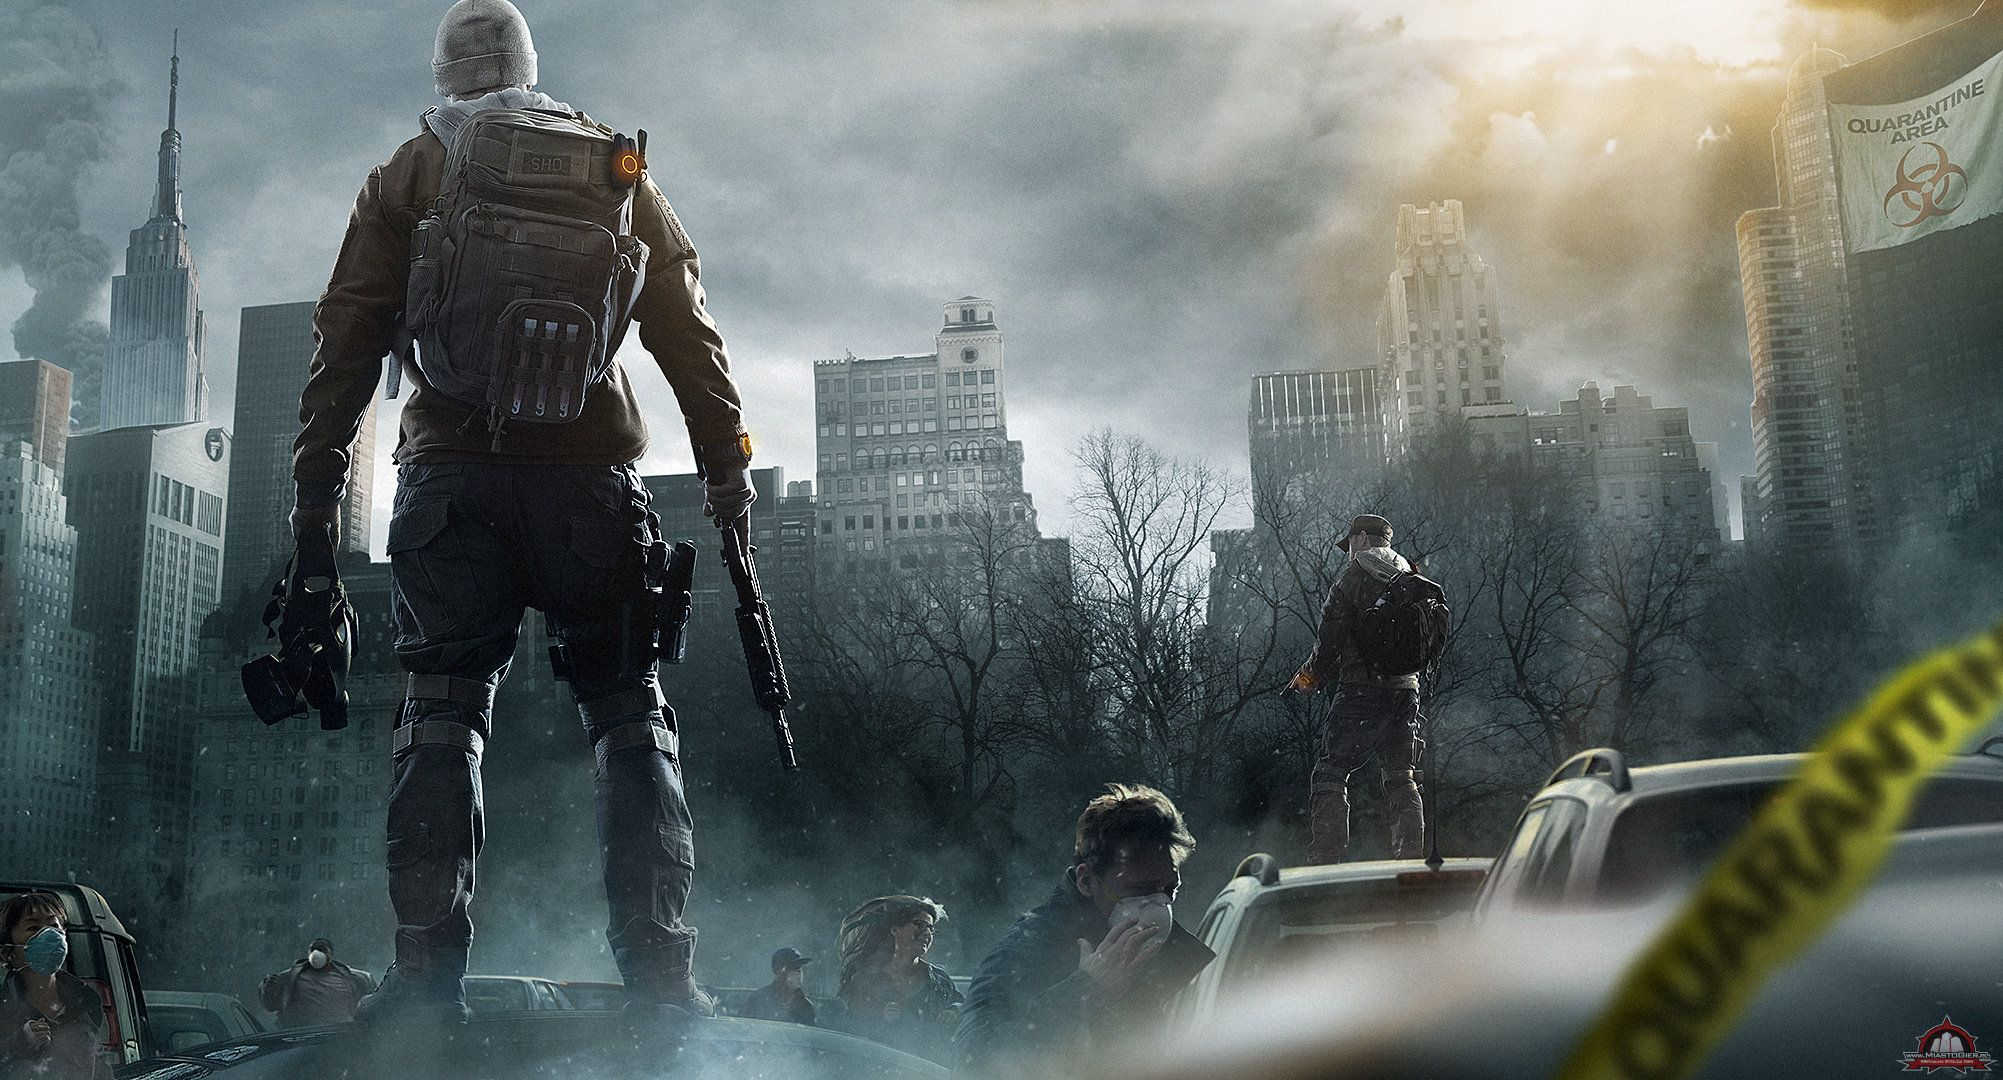 Tom Clancy's The Division, Tom Clancy's game, Tom Clancy's Division, pc game, video game